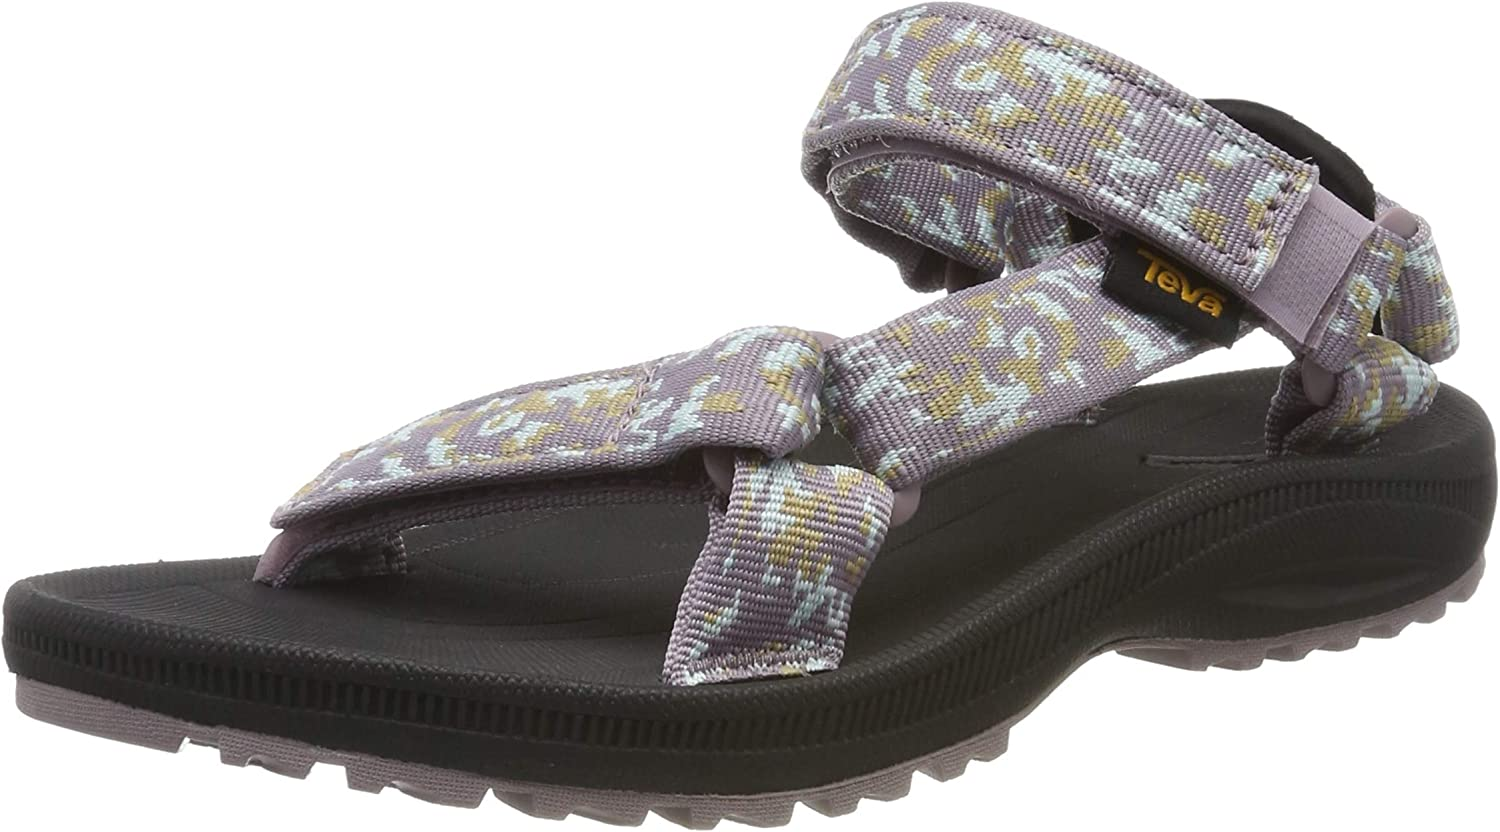 Teva Womens Winsted Textile Sandals